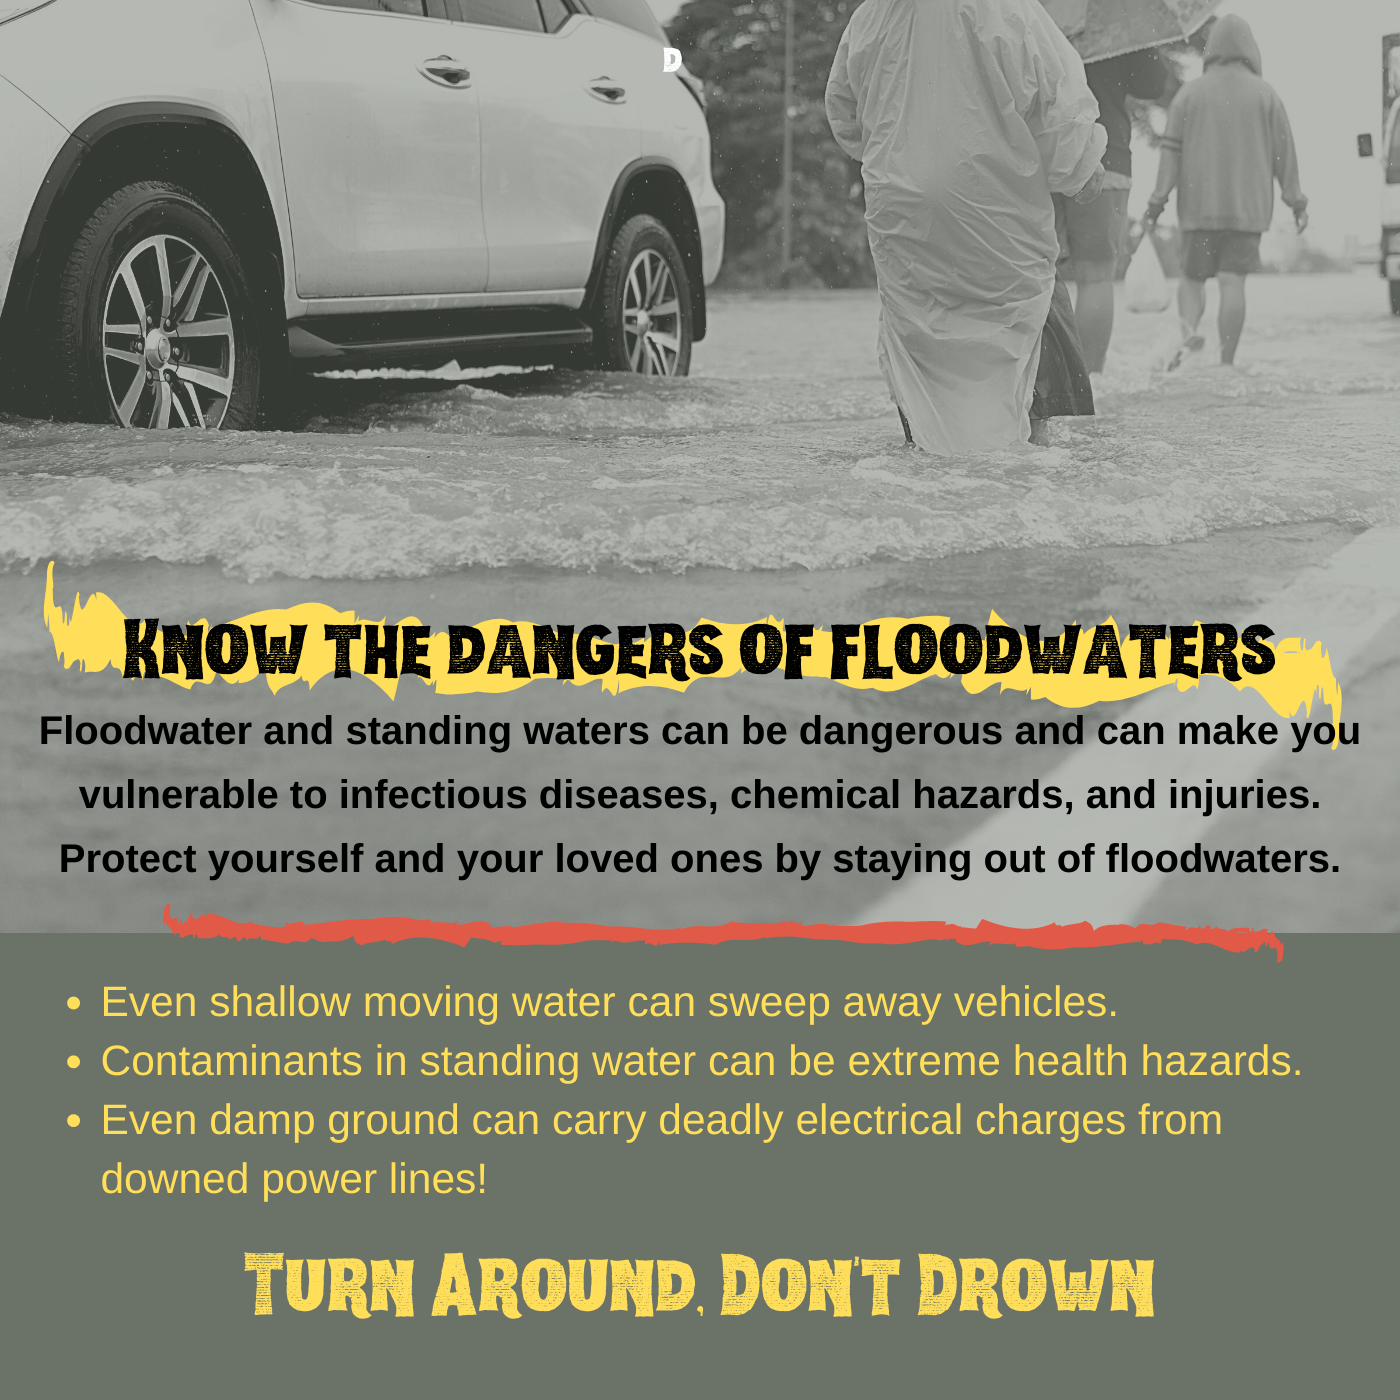 Remember: Turn Around, Don't Drown!